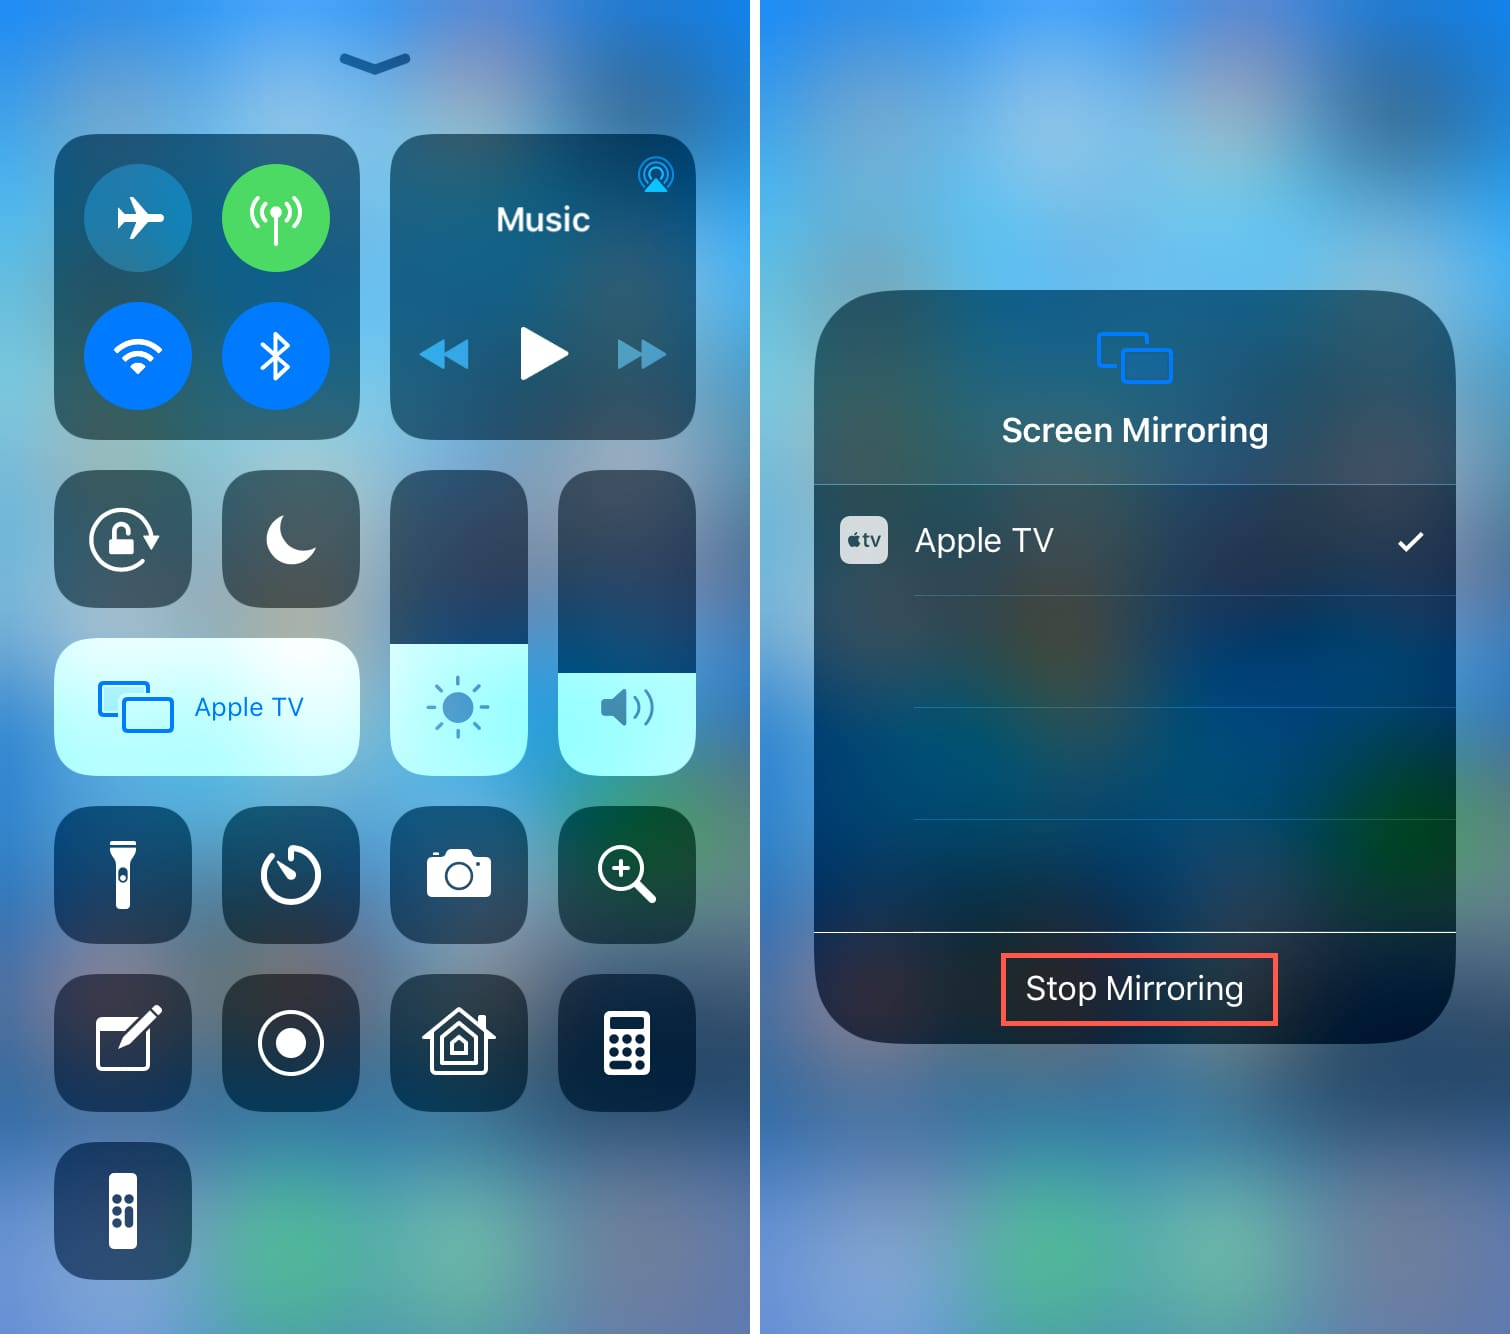 Stop Screen Mirroring to Apple TV from iPhone